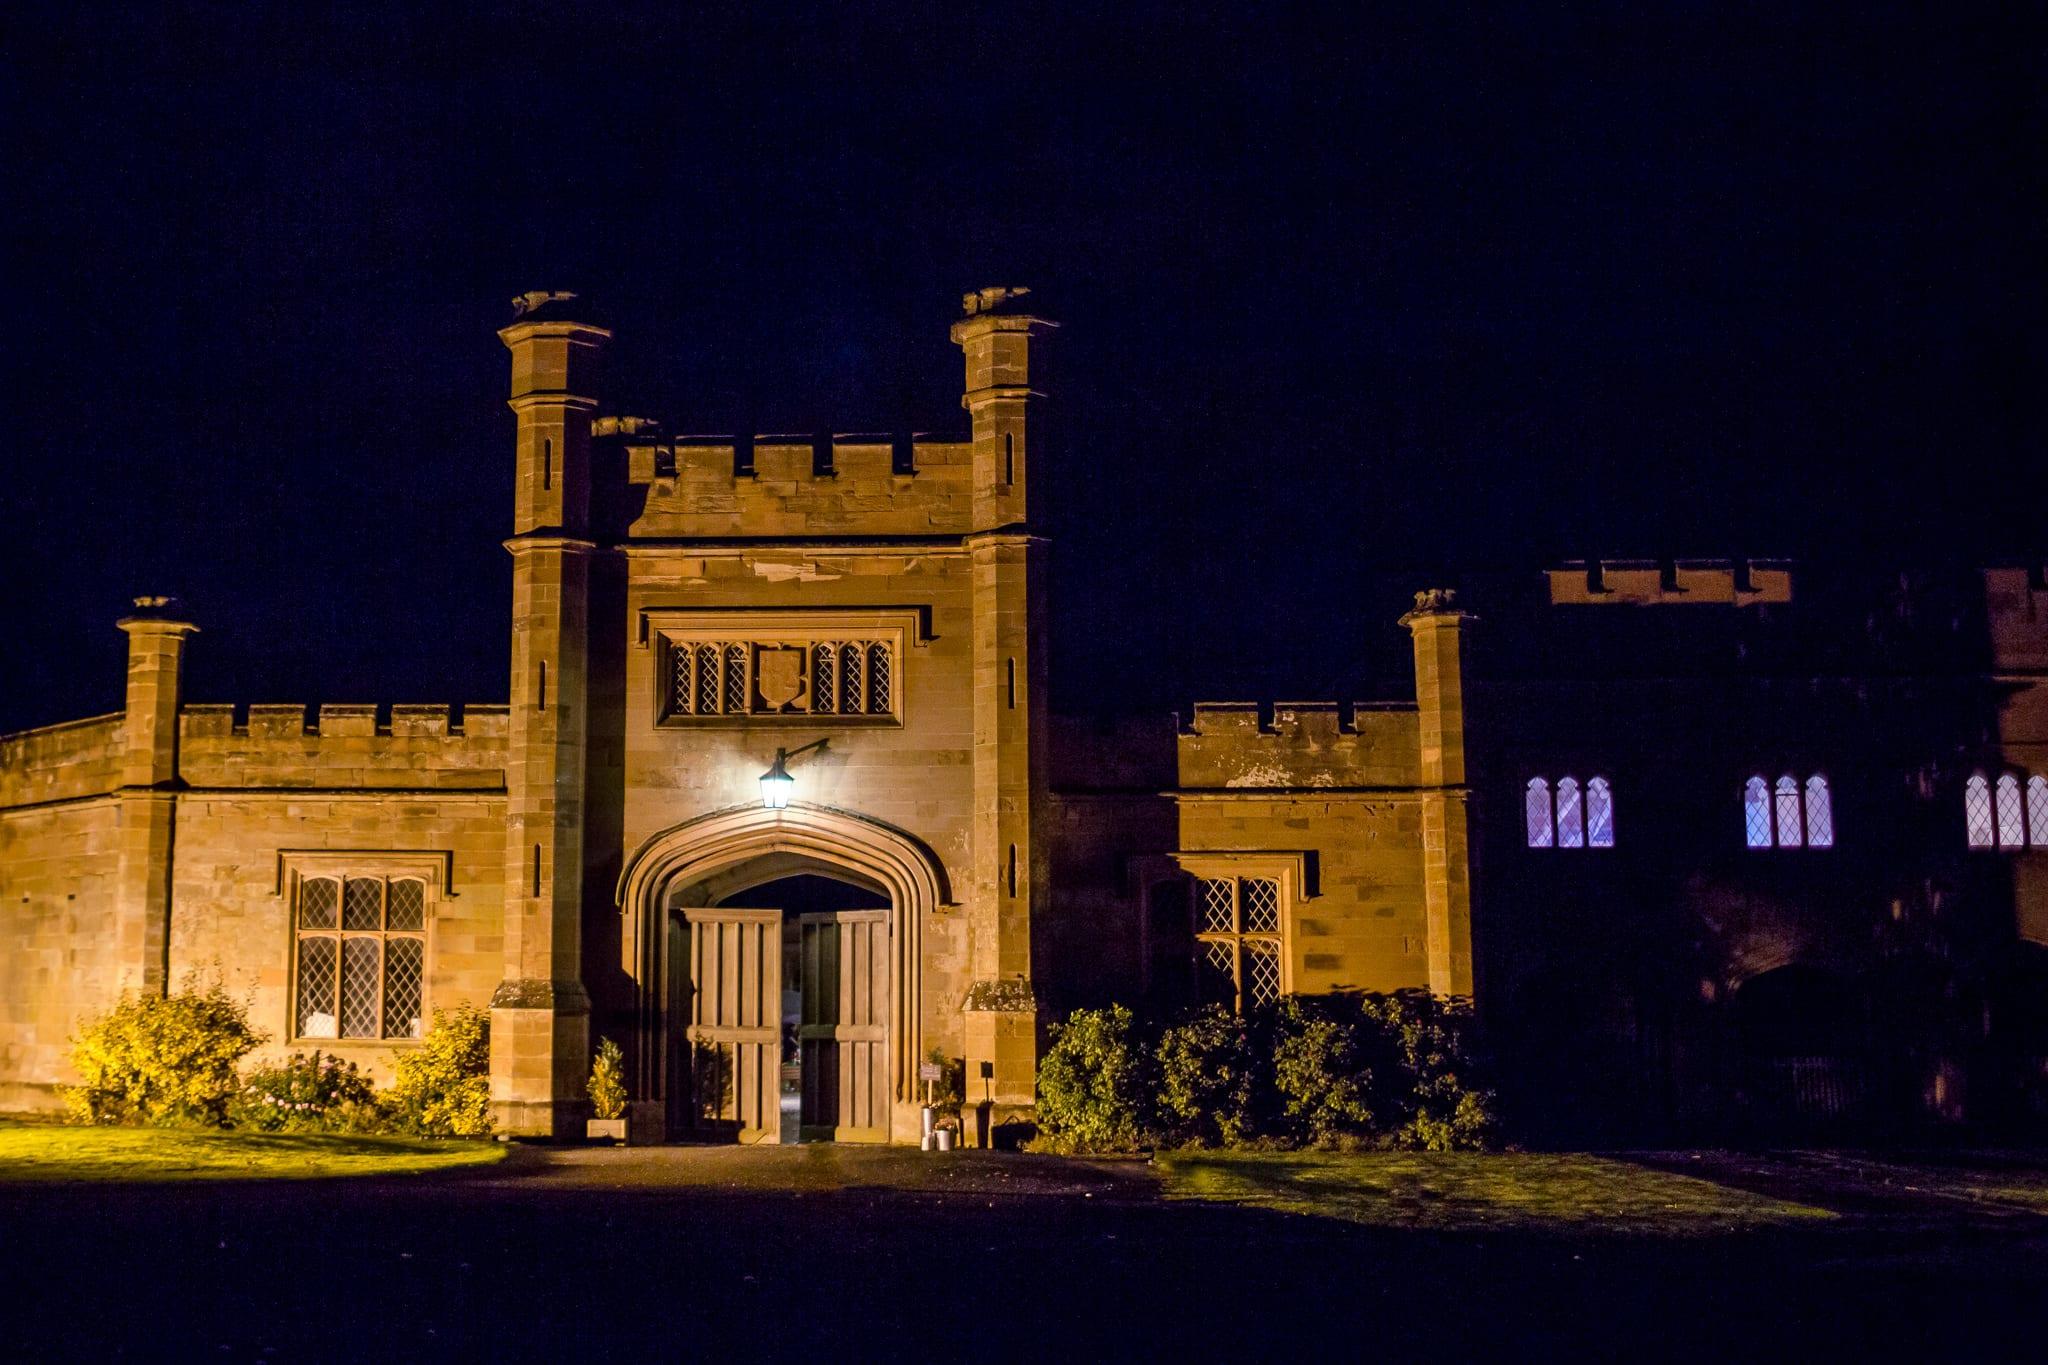 Stoneleigh Abbey at night